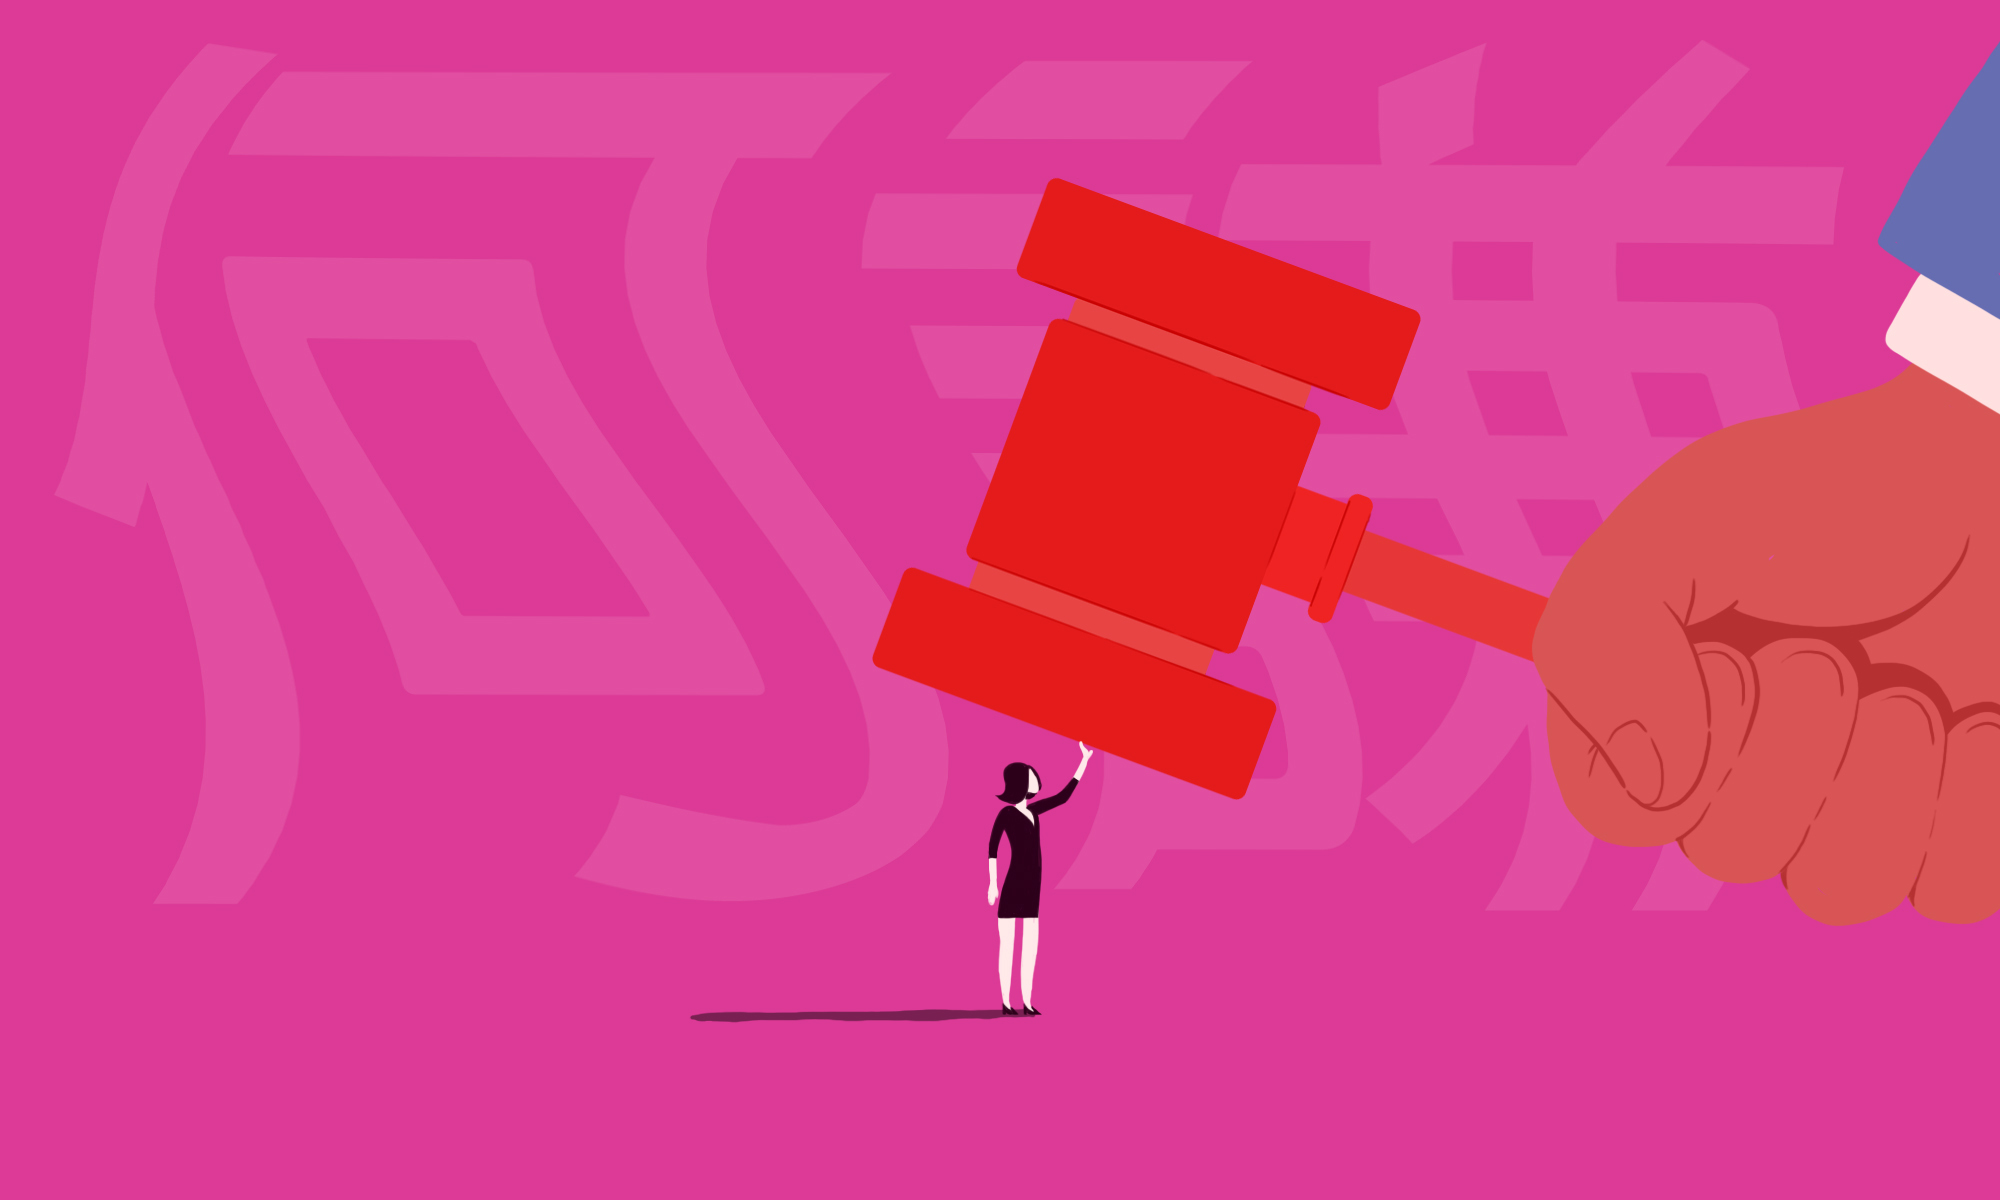 She accused a Chinese language media megastar of sexual assault. He sued — and won